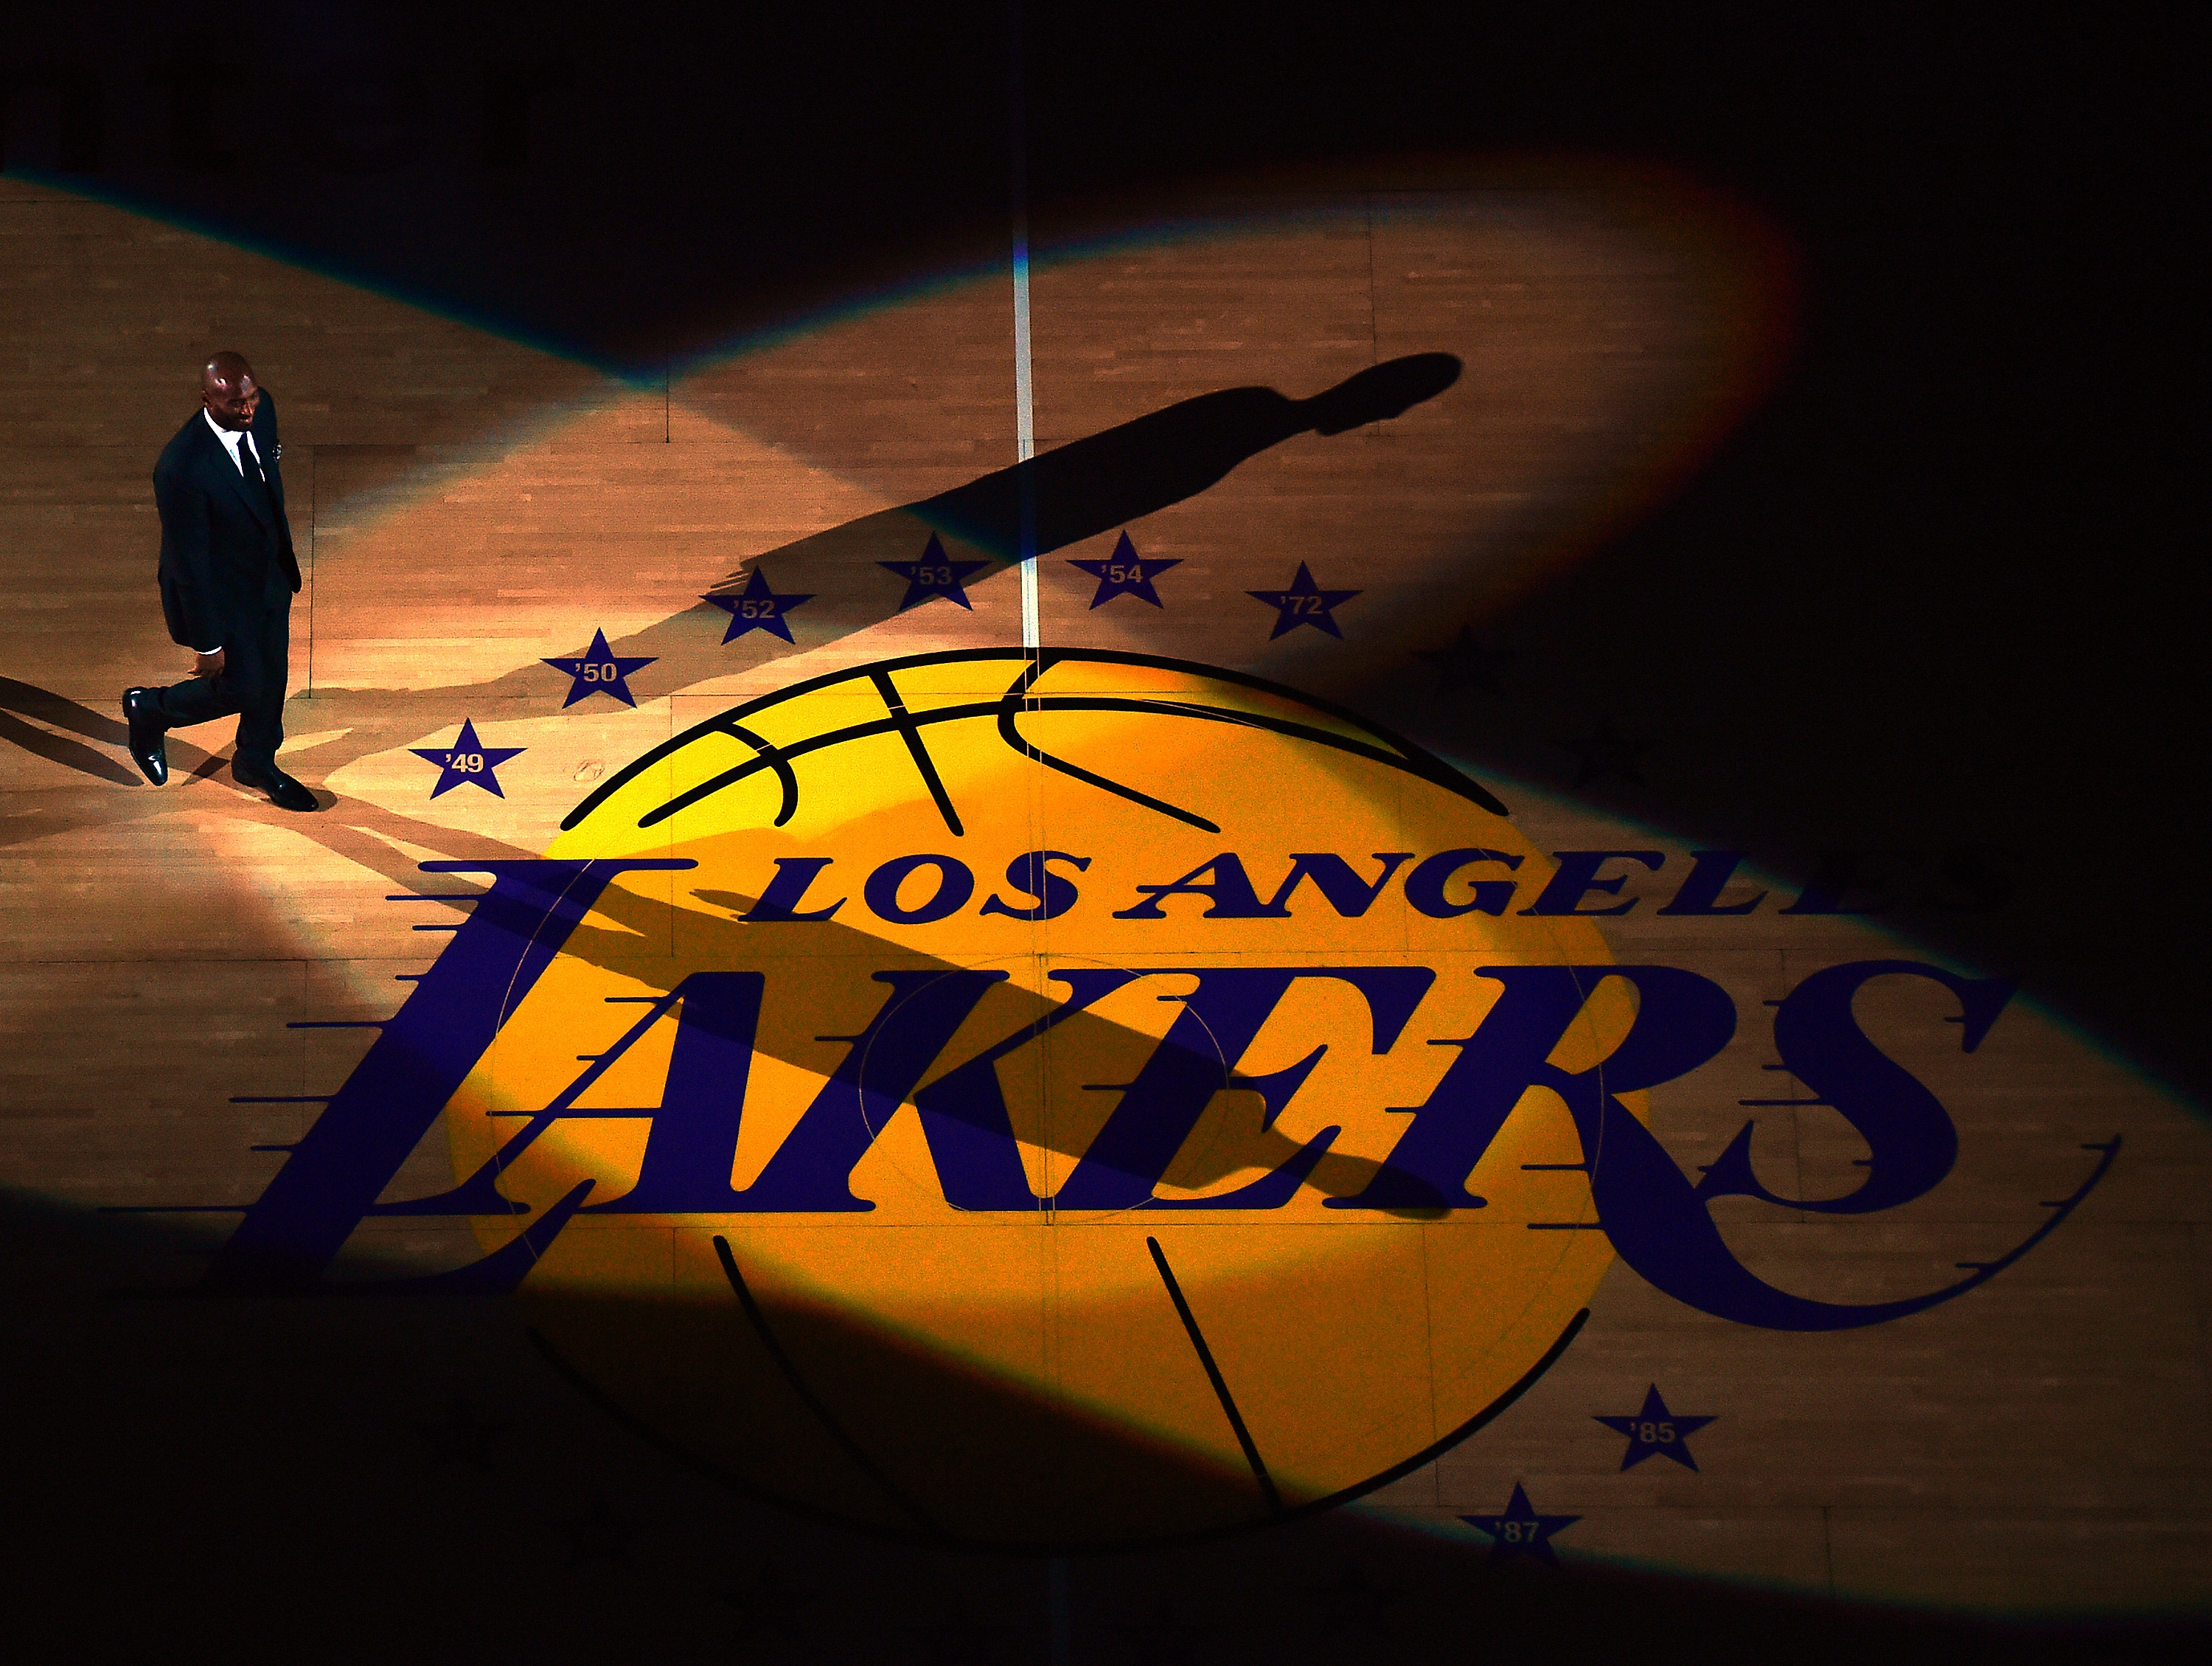 the los angeles lakers history This pin was discovered by debra flores discover (and save) your own pins on pinterest.